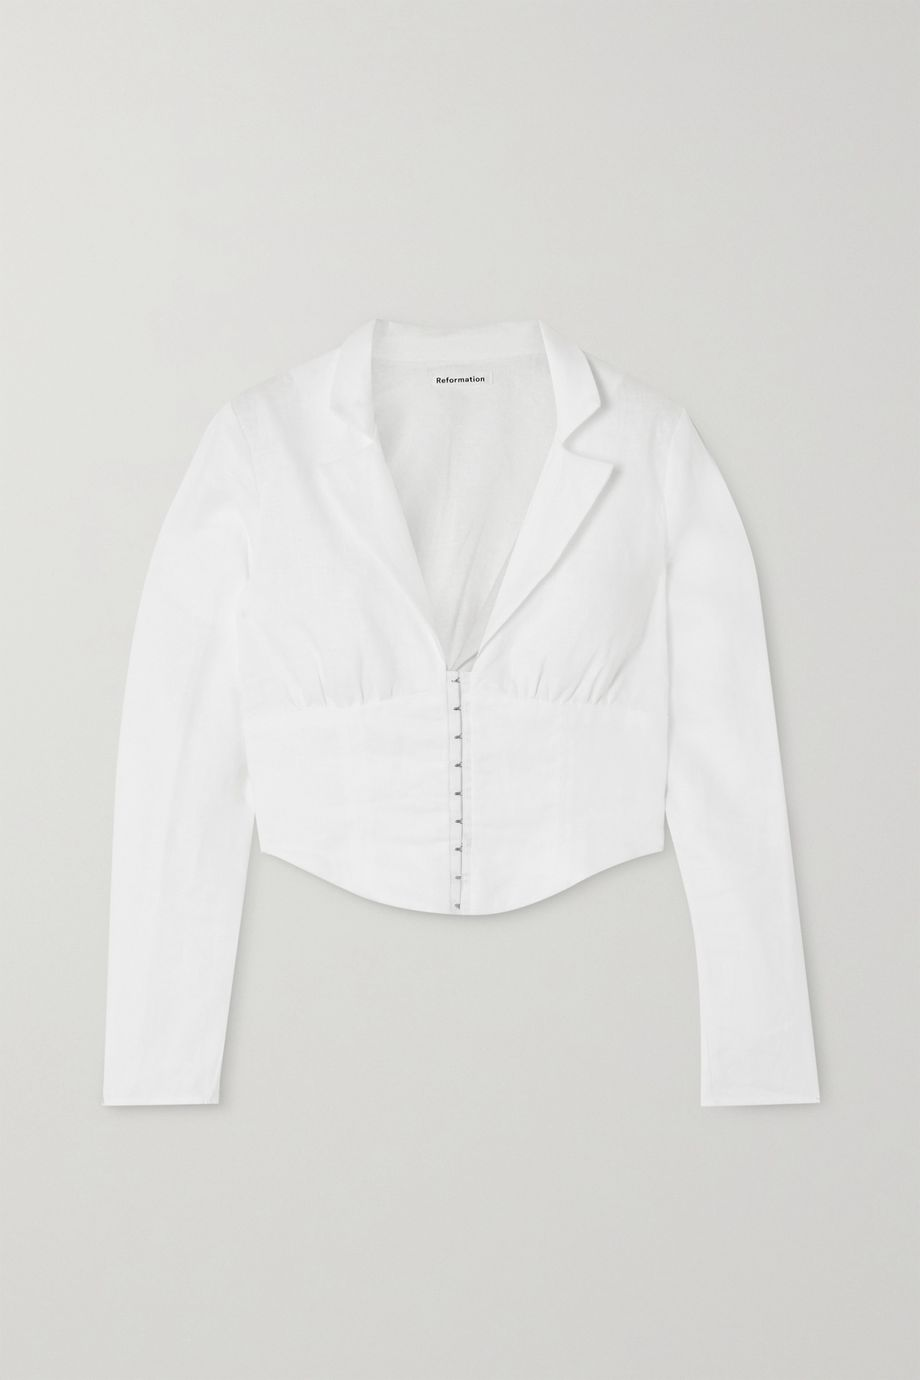 Reformation + NET SUSTAIN Vance cropped linen blouse